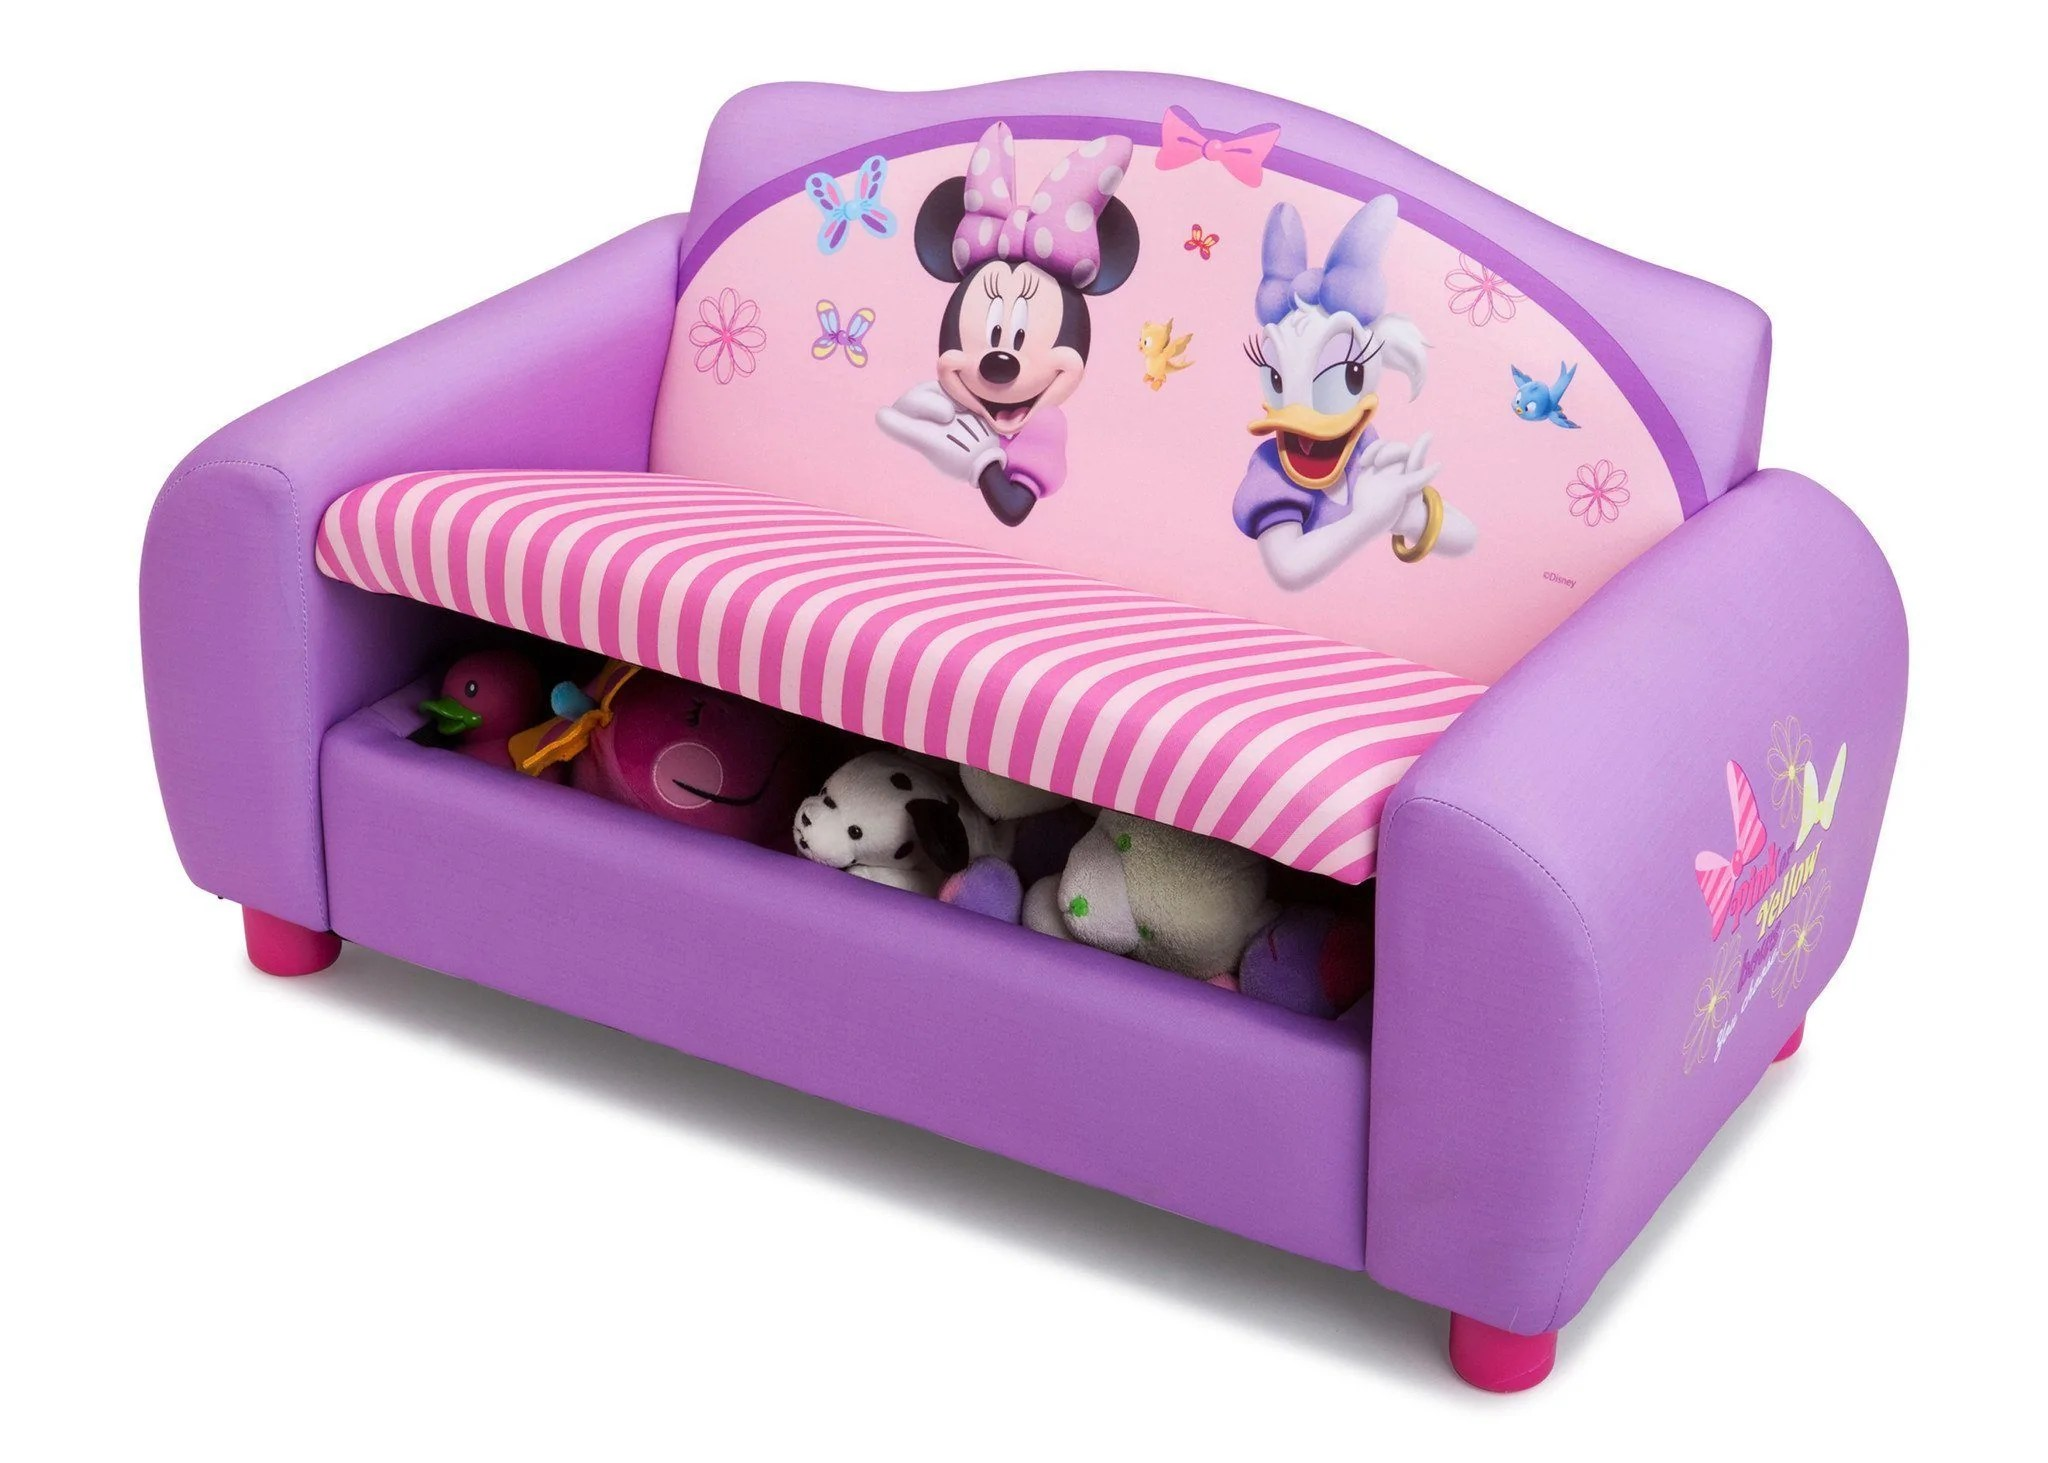 minnie mouse upholstered chair evenflo easy fold high disney sofa with storage delta children